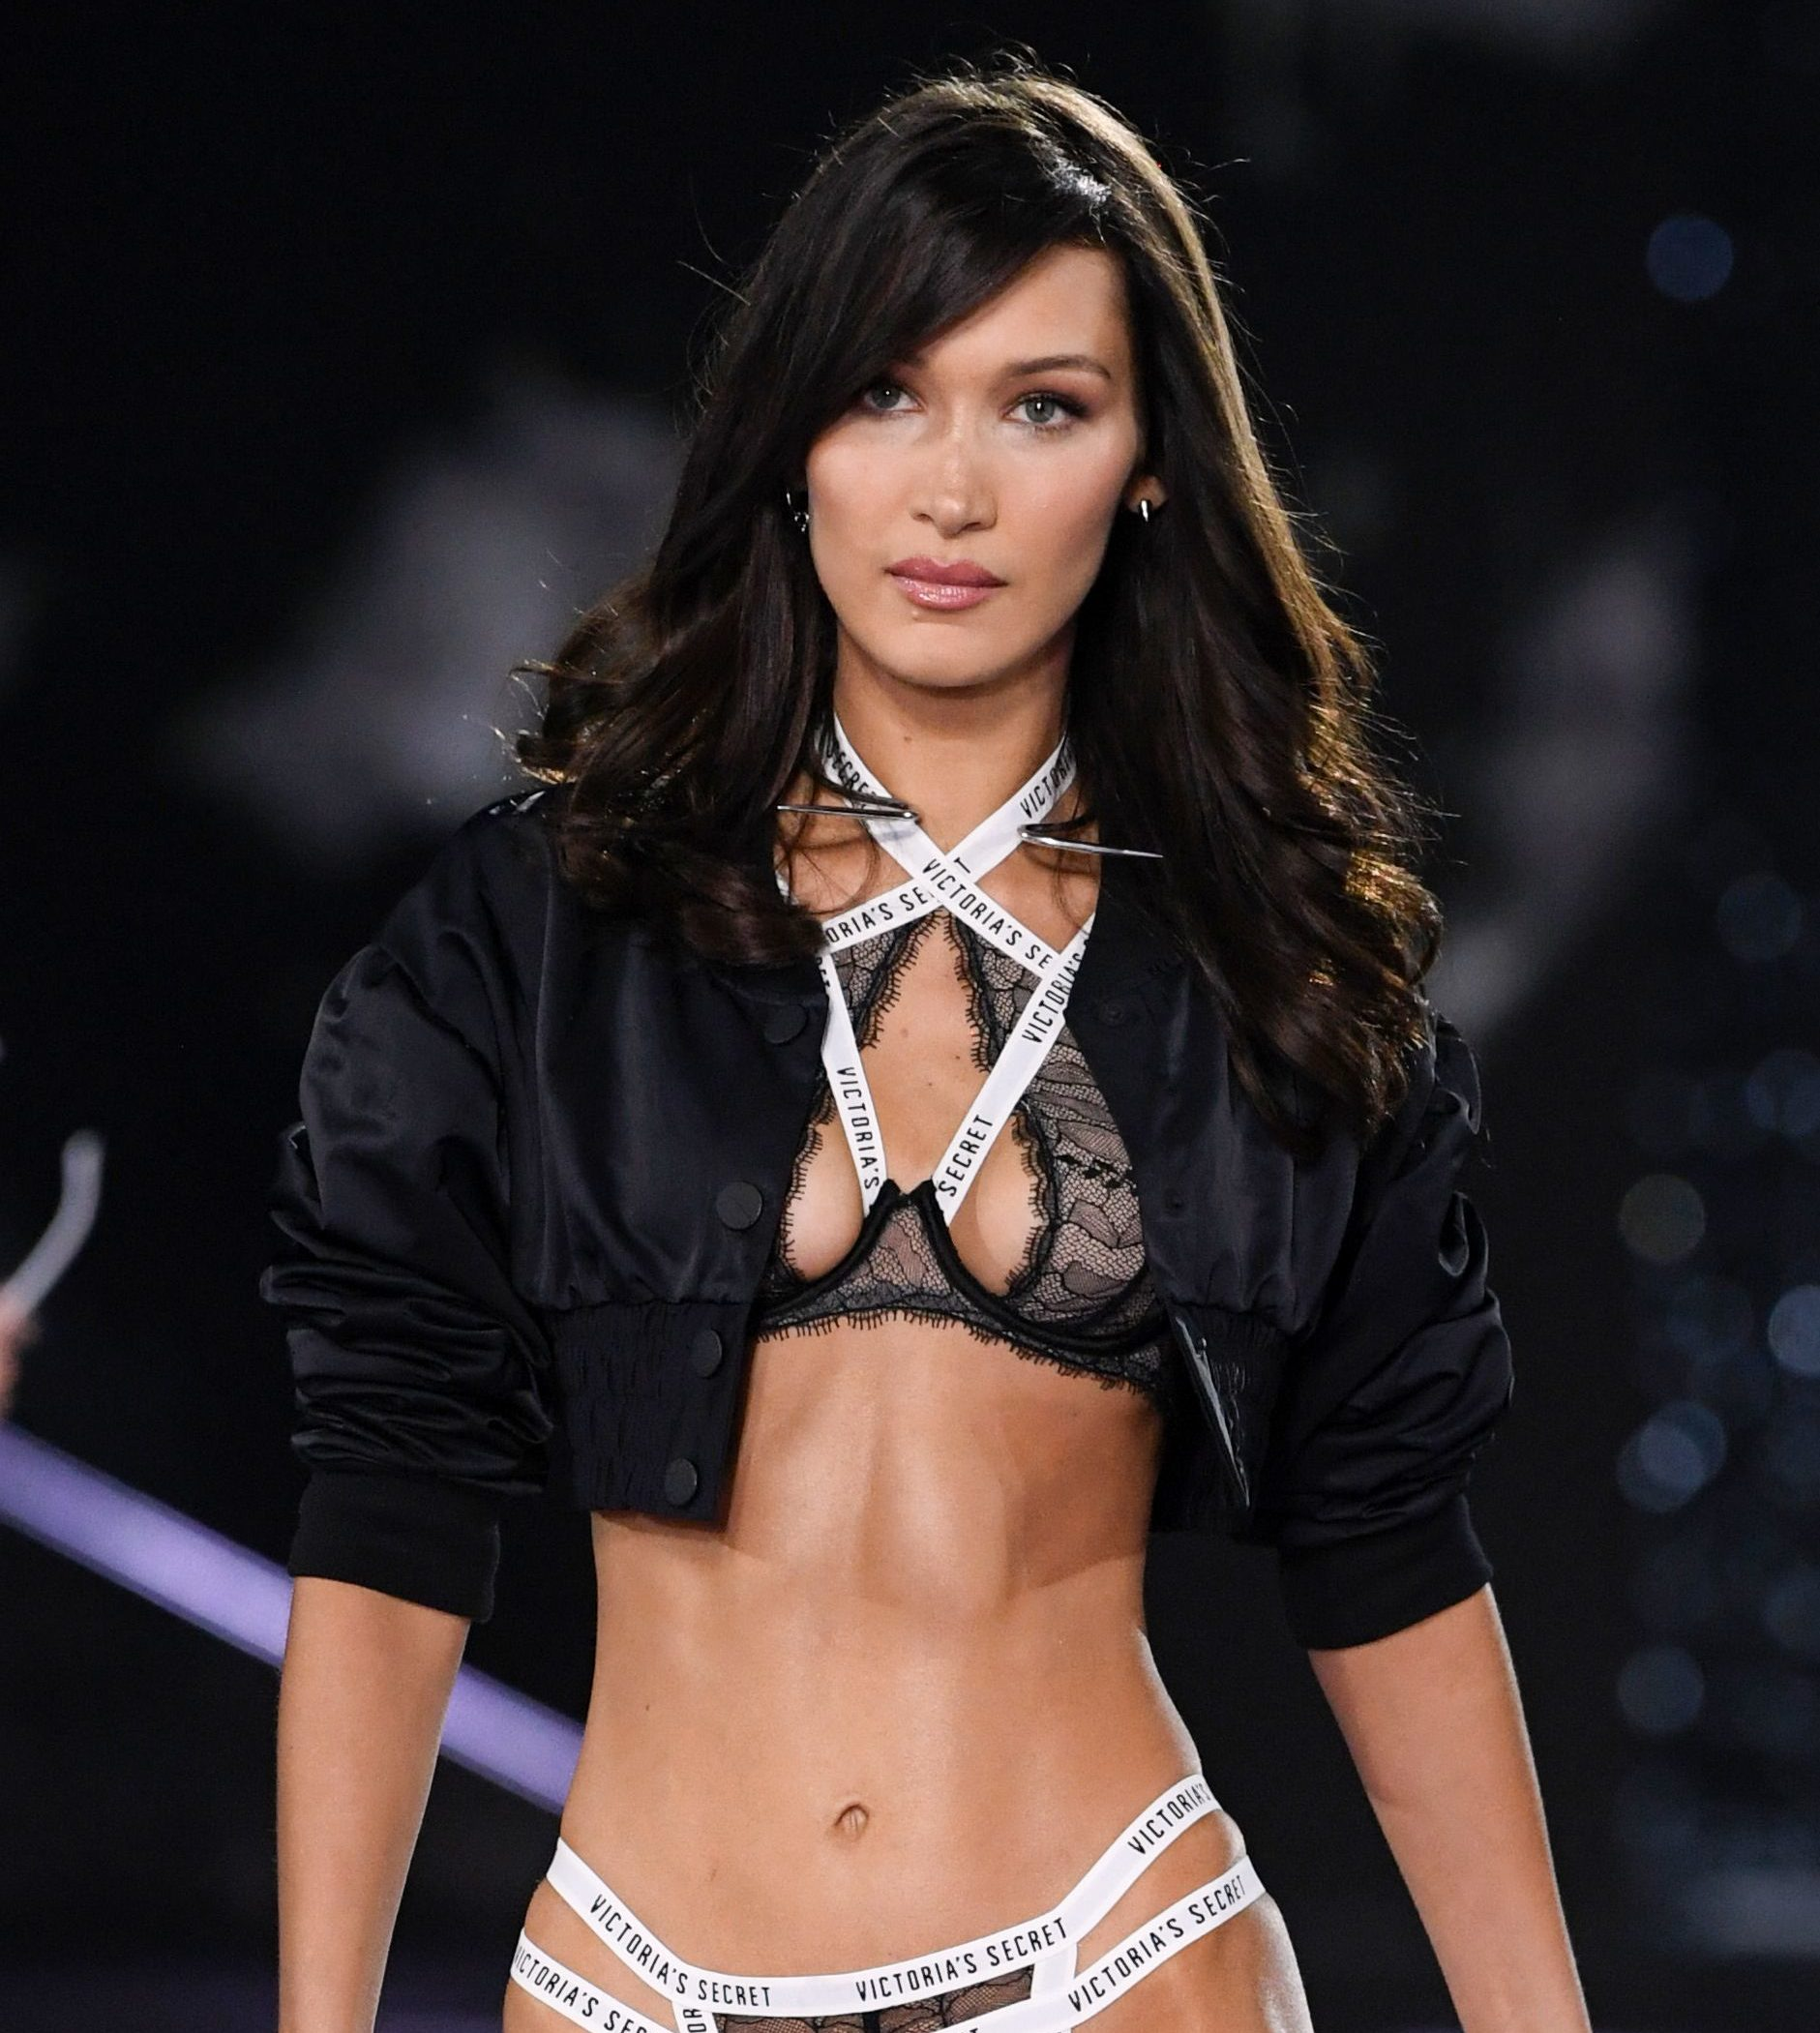 Victoria's Secret Fashion Show 2018: Bella Hadid with her chocolate brown medium-length hair styled into a curly blow out with a side-swept fringe, wearing a black jacket with lingerie on the runway